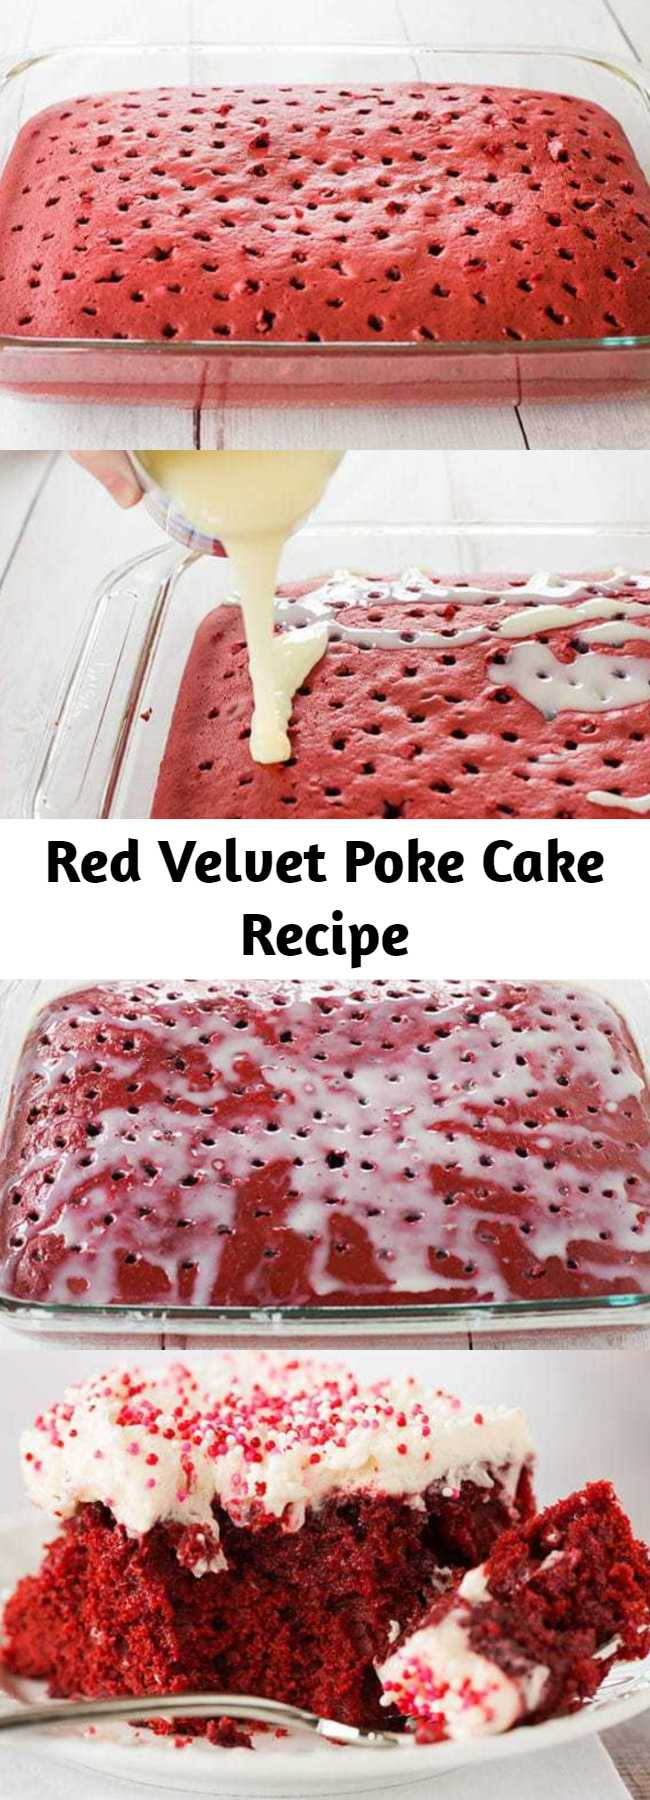 Red Velvet Poke Cake Recipe - Red velvet cake is infused with sweetened condensed milk and topped with the best cream cheese frosting. A must for Valentine's Day!